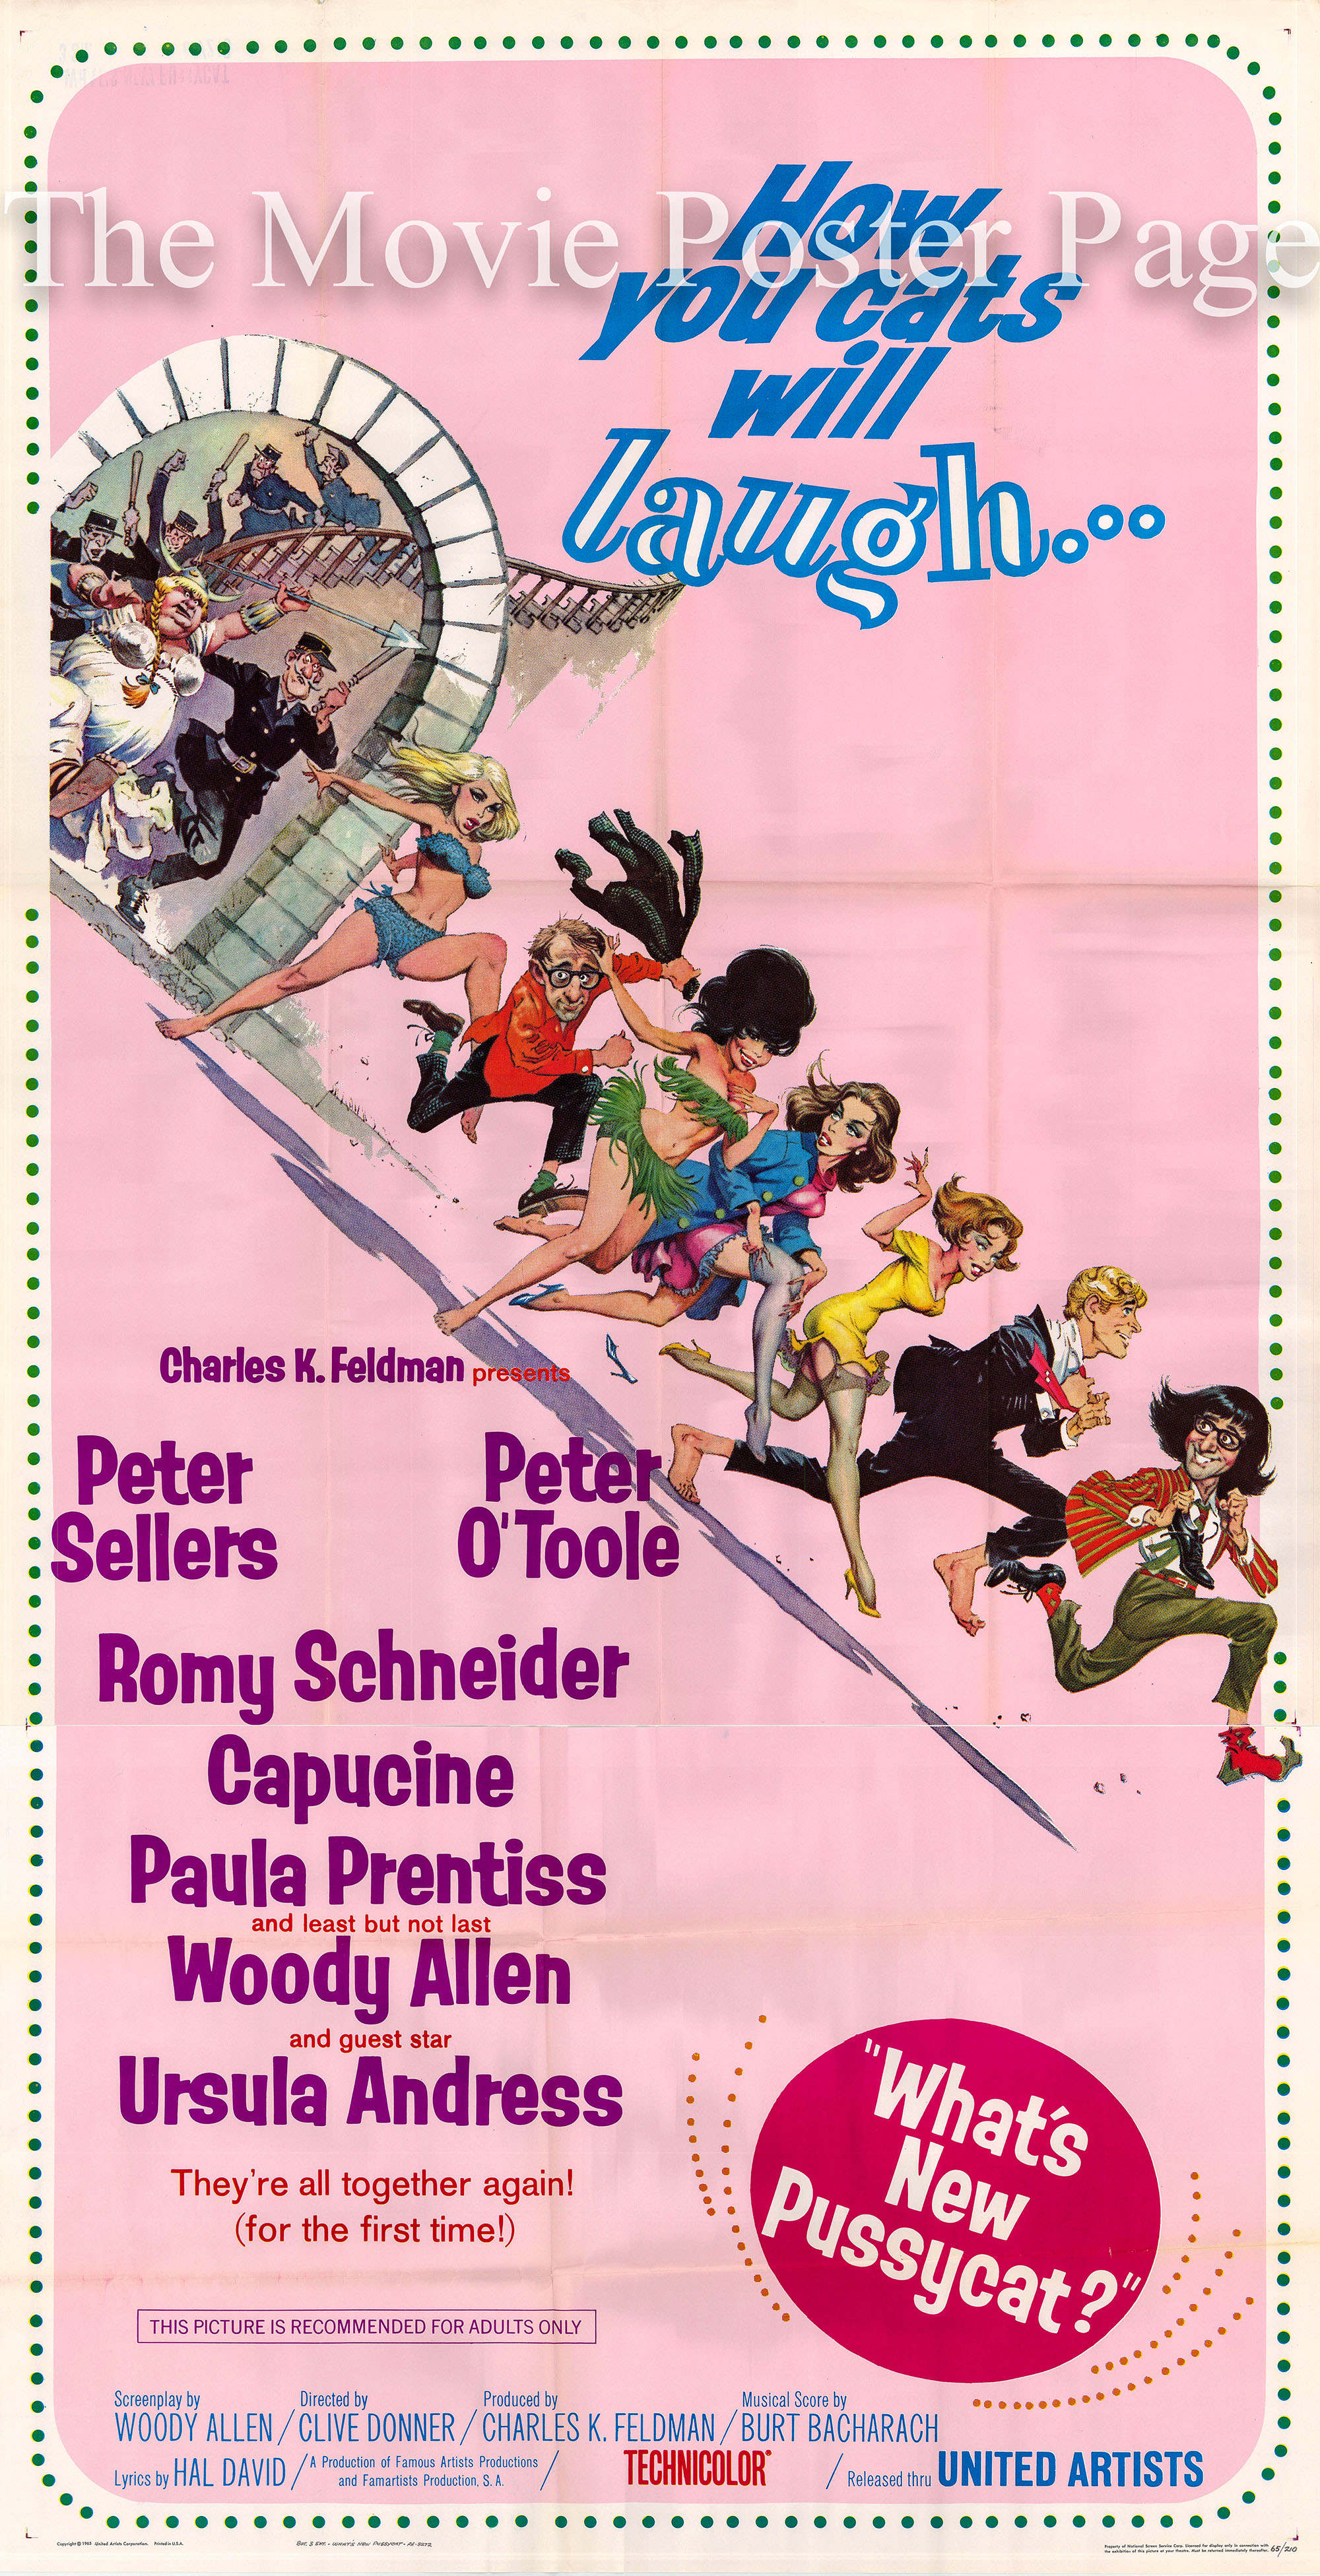 Pictured is a US one-sheet promotional poster for the 1965 Clive Donner and Richard Talmadge film What's New Pussycat? starring Peter Sellers as Dr. Fritz Fassbender.